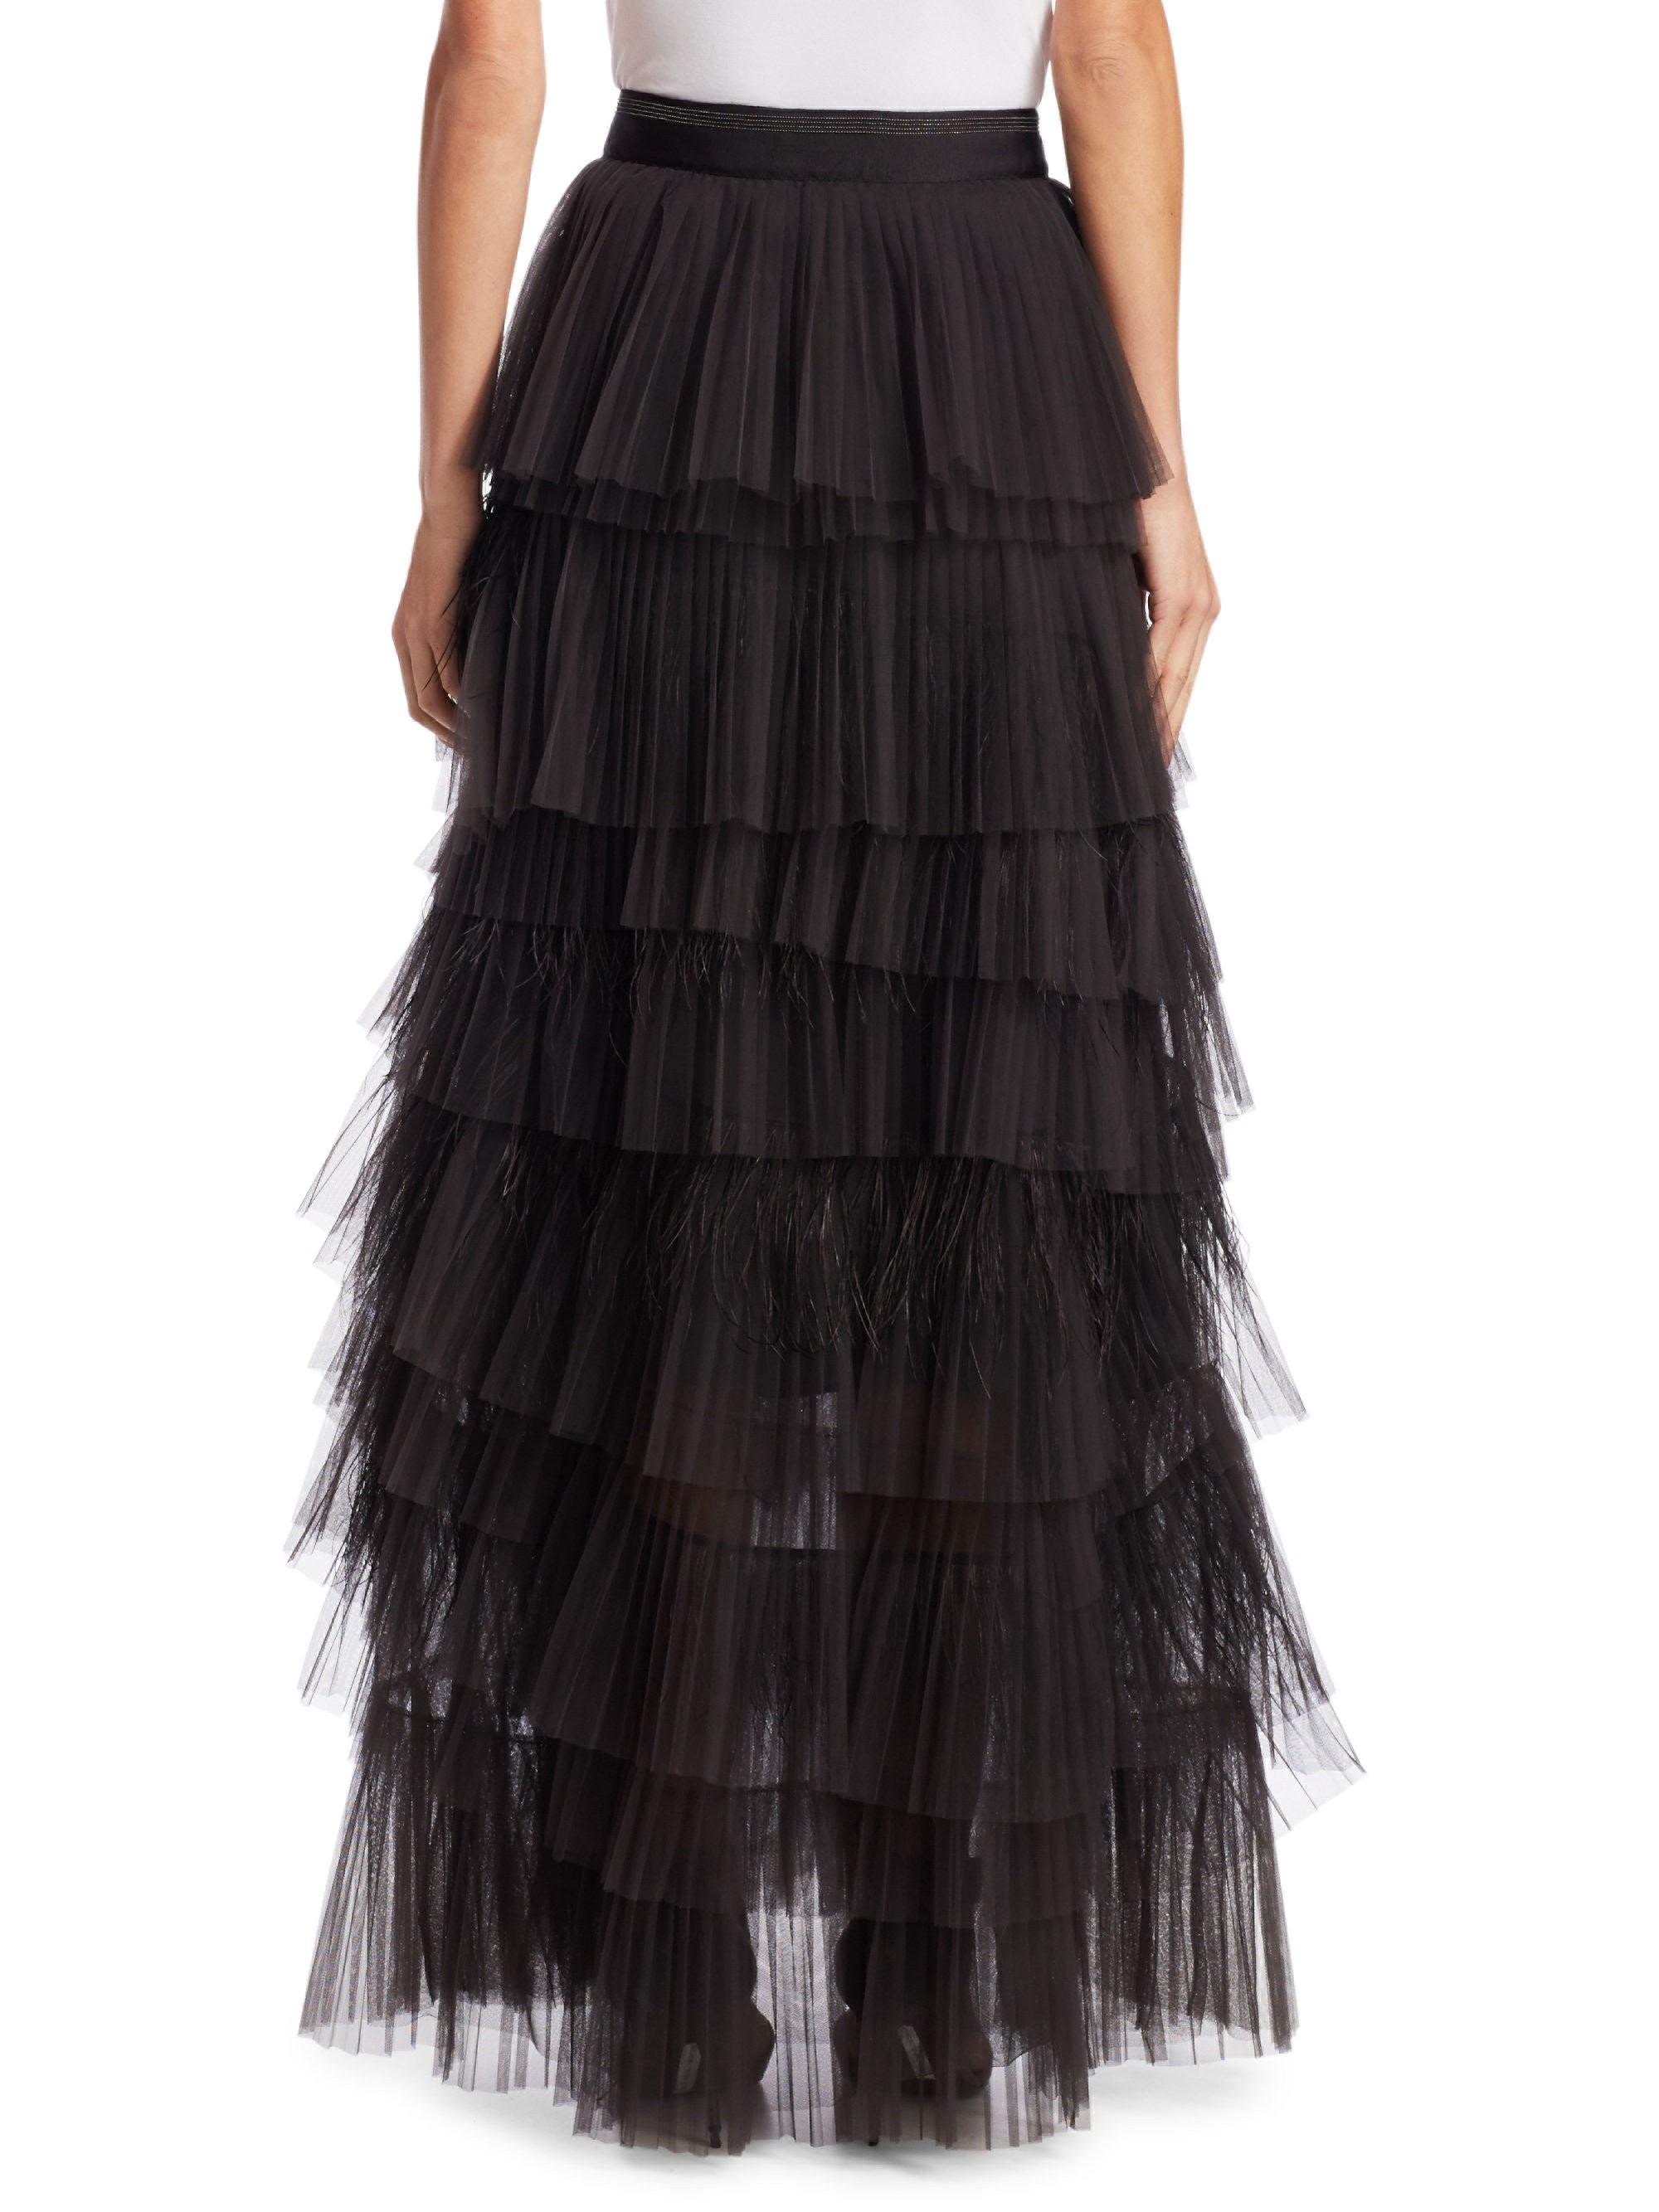 032205bf2 Tulle Tiered Maxi Skirt by BRUNELLO CUCINELLI in 2019 | Products ...